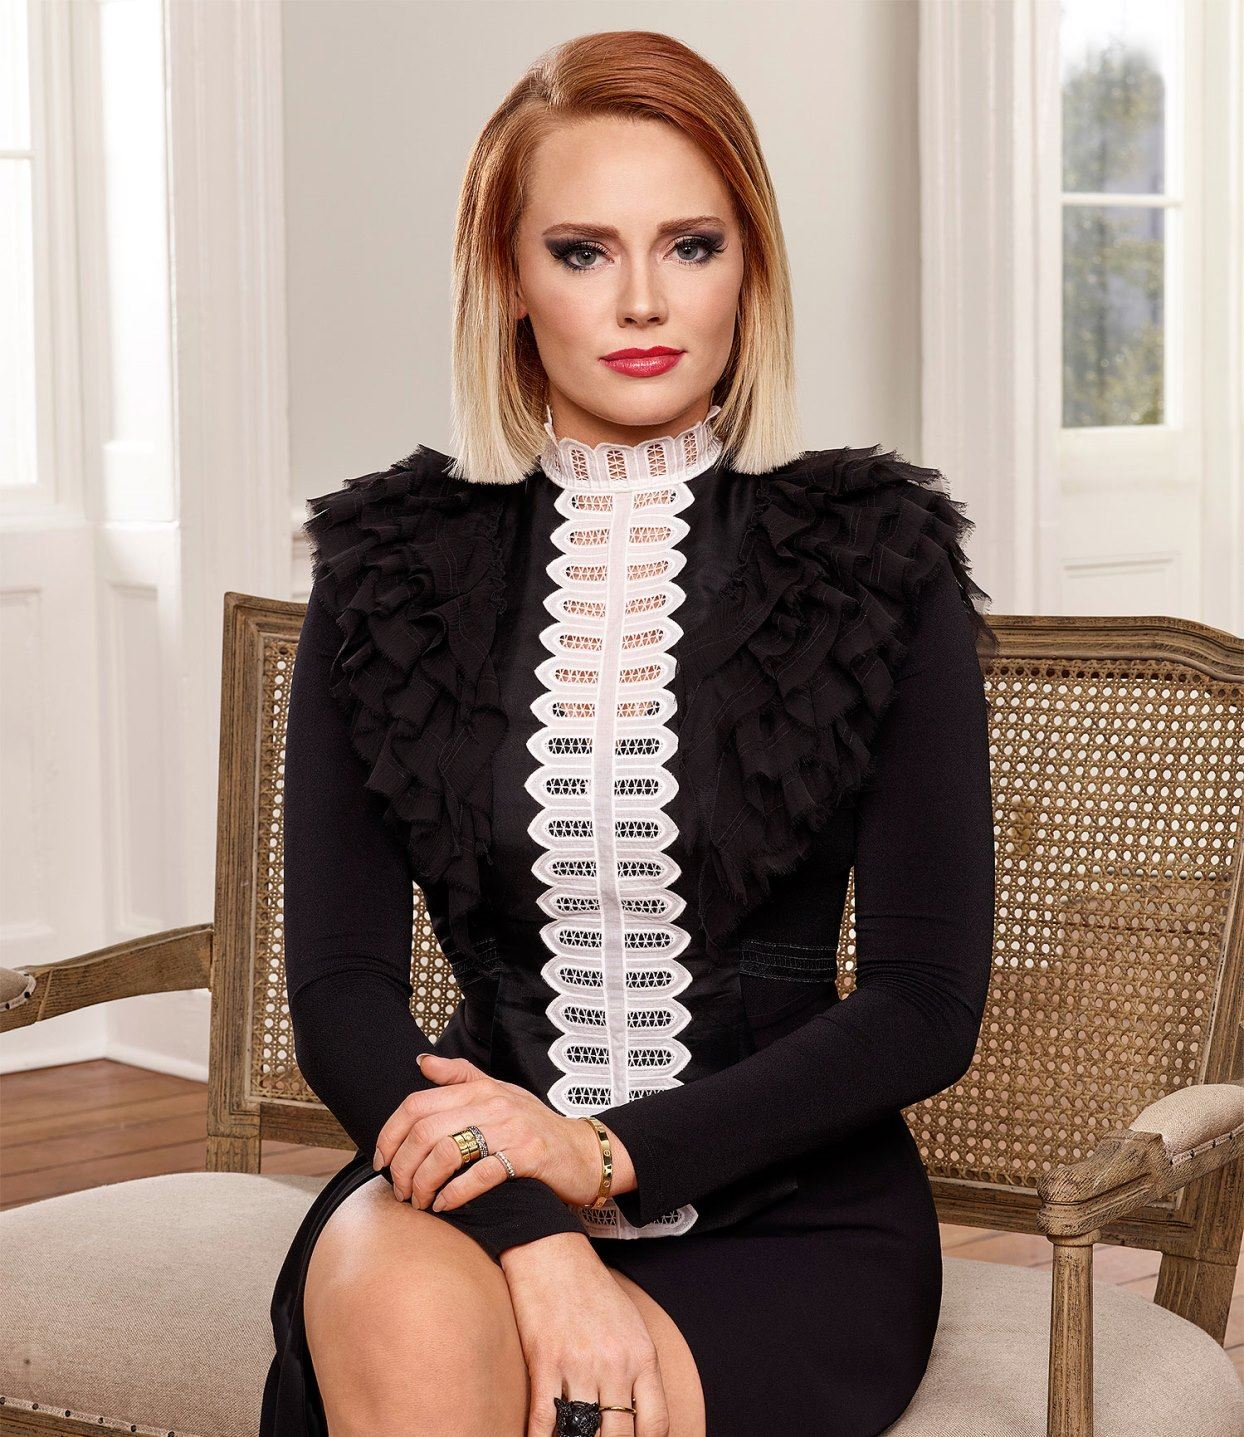 Southern Charm Kathryn Dennis Interview